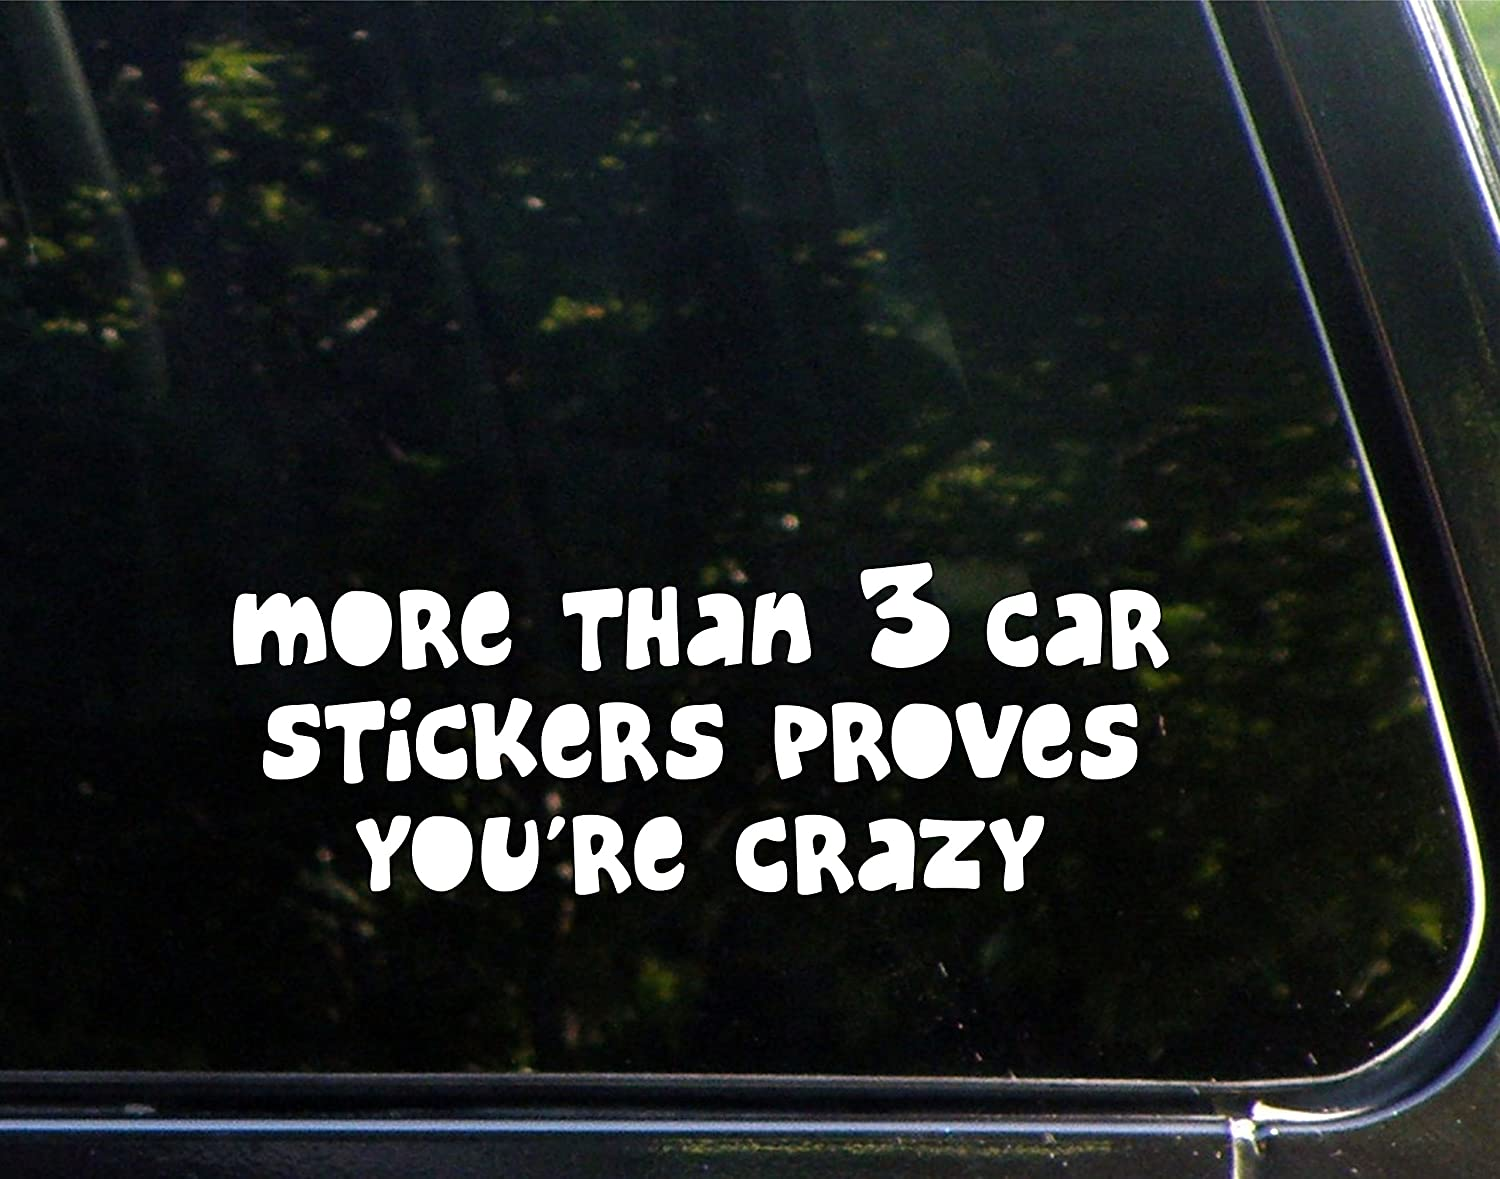 Amazon com more than 3 car stickers proves youre crazy 8 3 4 x 3 1 2 vinyl die cut decal bumper sticker for windows cars trucks laptops